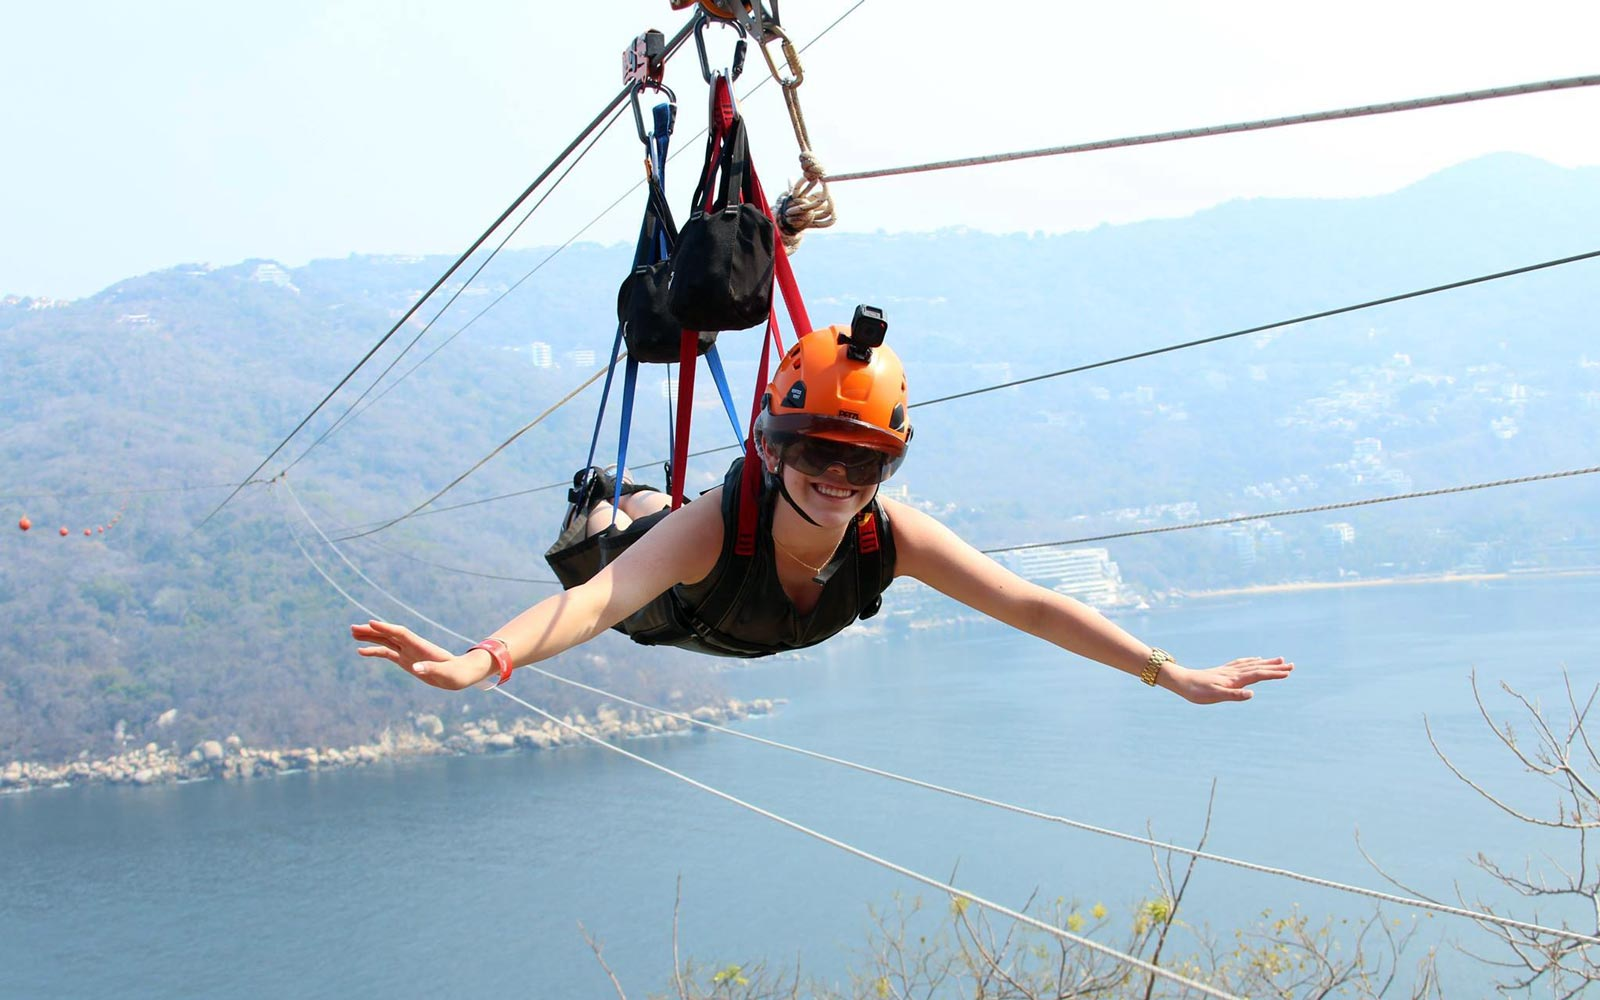 The World's Largest Over-water Zip Line Is in Acapulco